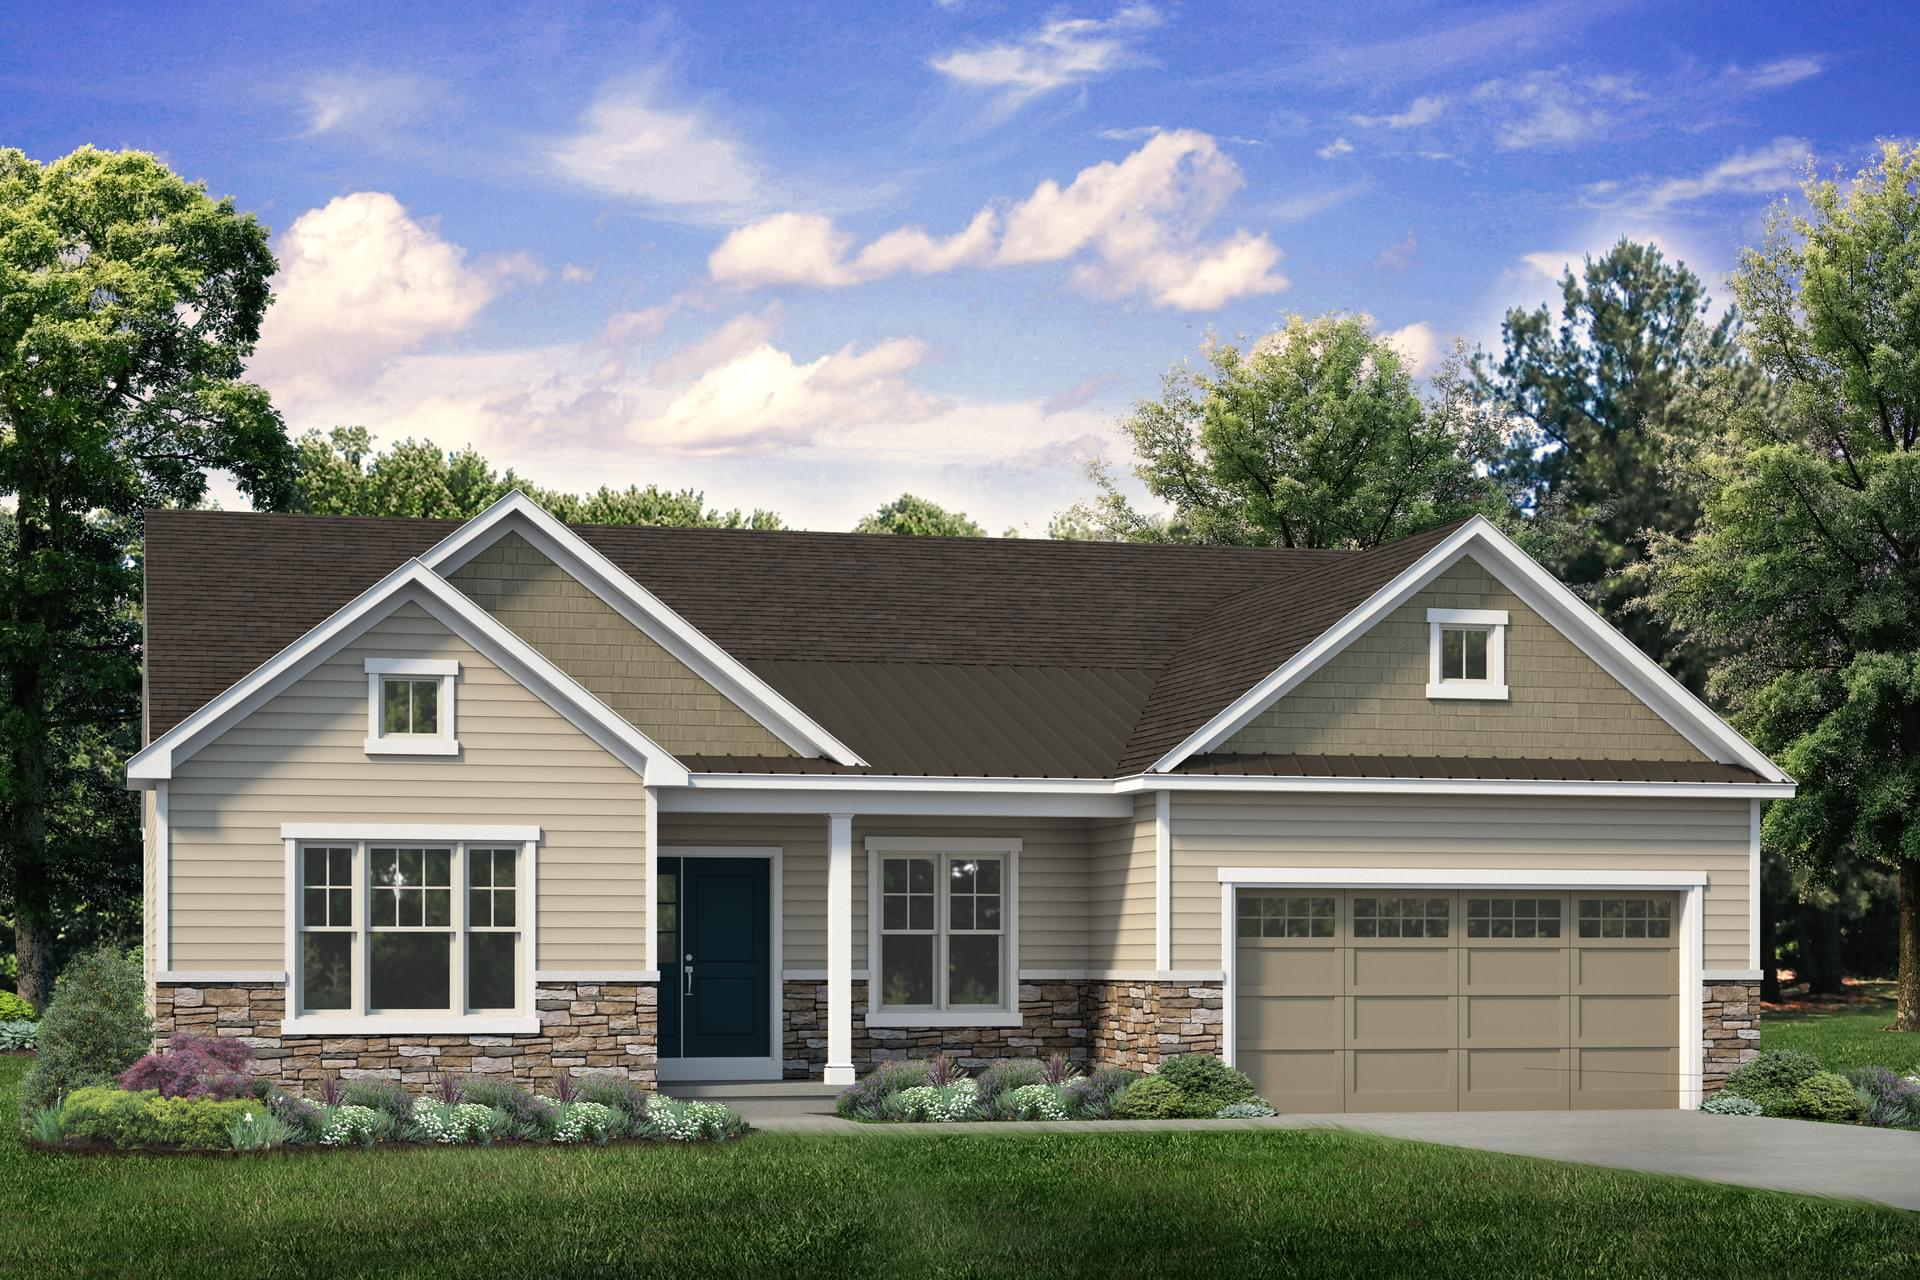 The Folino New Home in Schnecksville PA - Ridings at Parkland